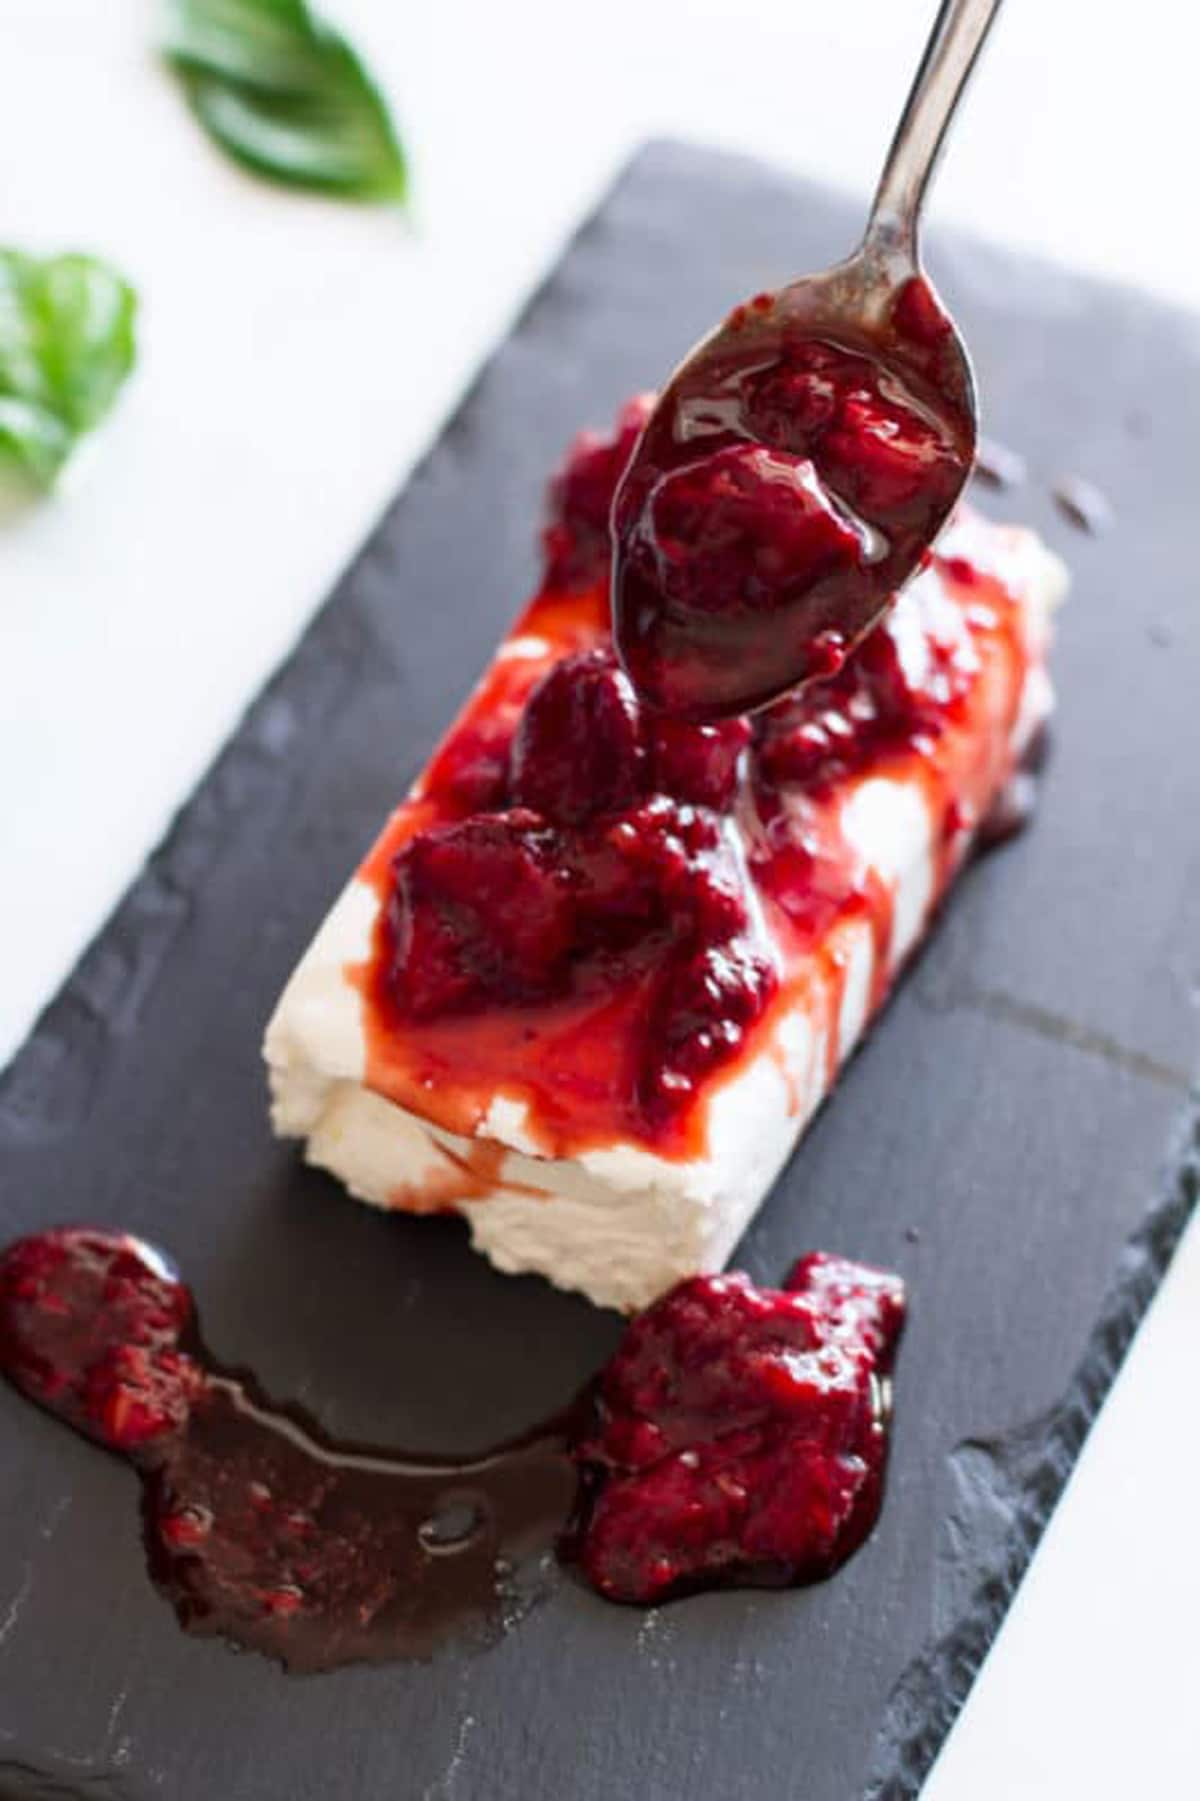 Spoonful of strawberry sauce on a block of cream cheese, basil on table.